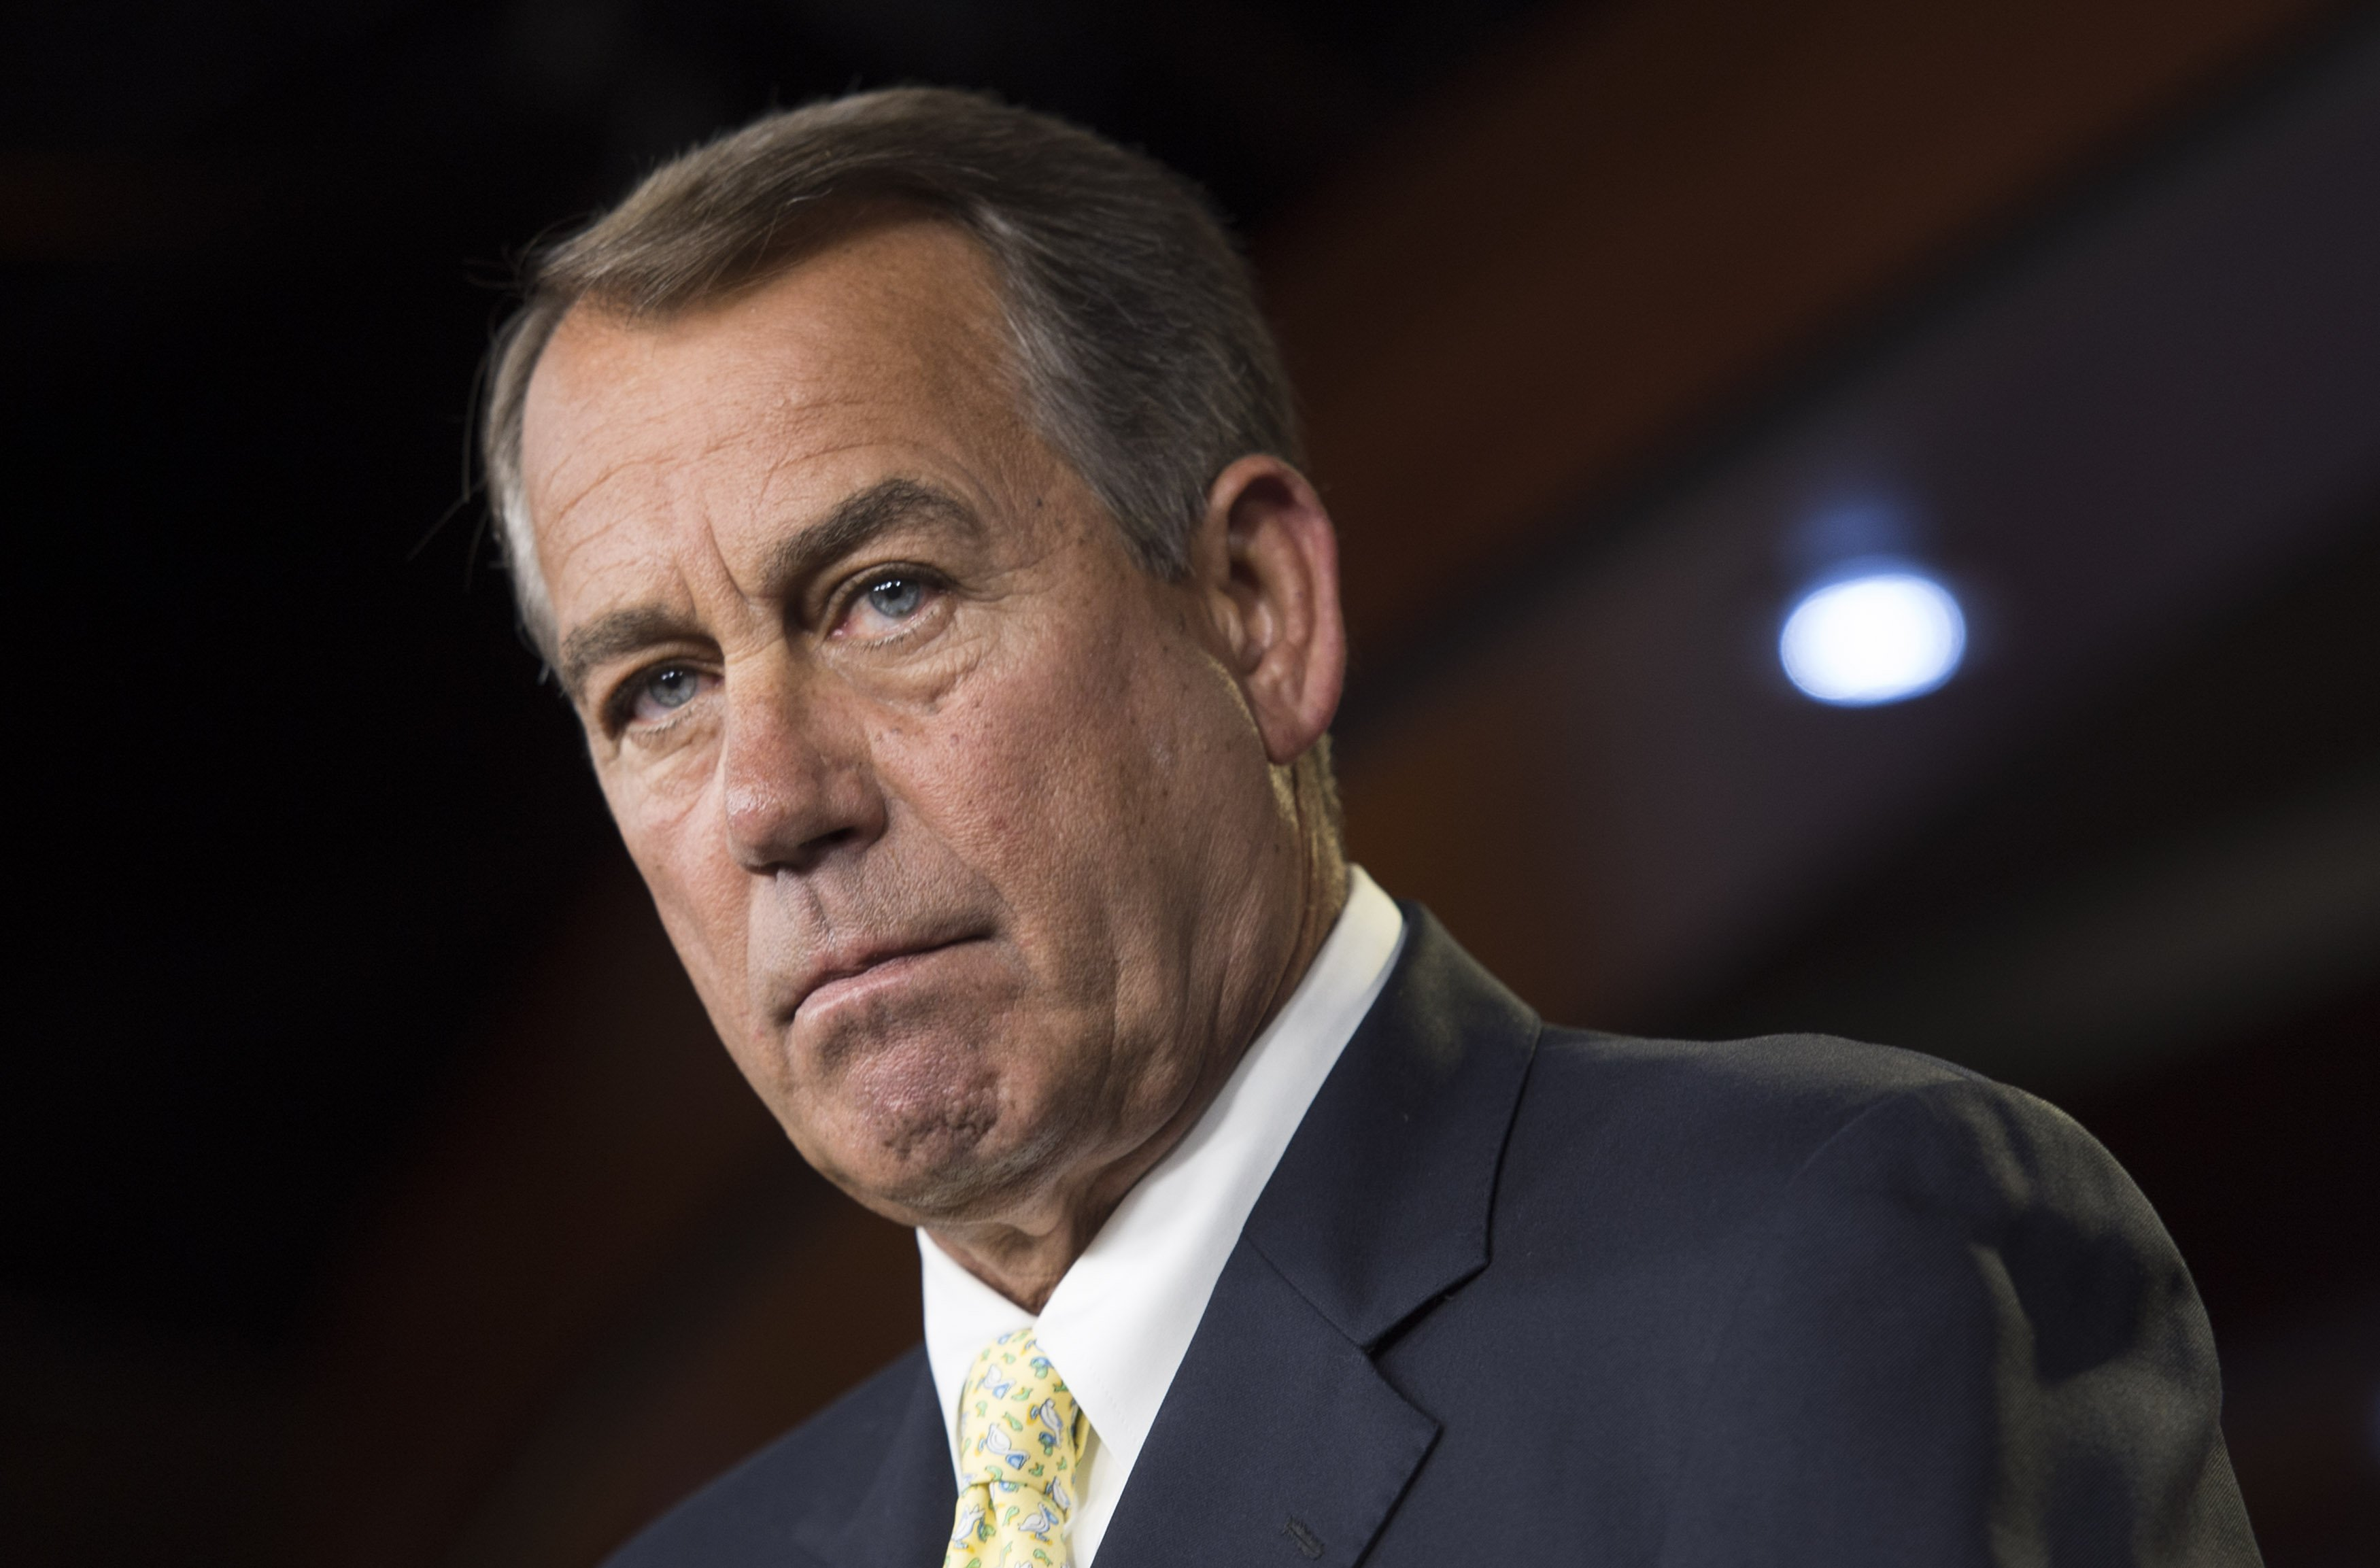 Speaker of the House John Boehner speaks during a press conference on Capitol Hill, in Washington, on June 19, 2014